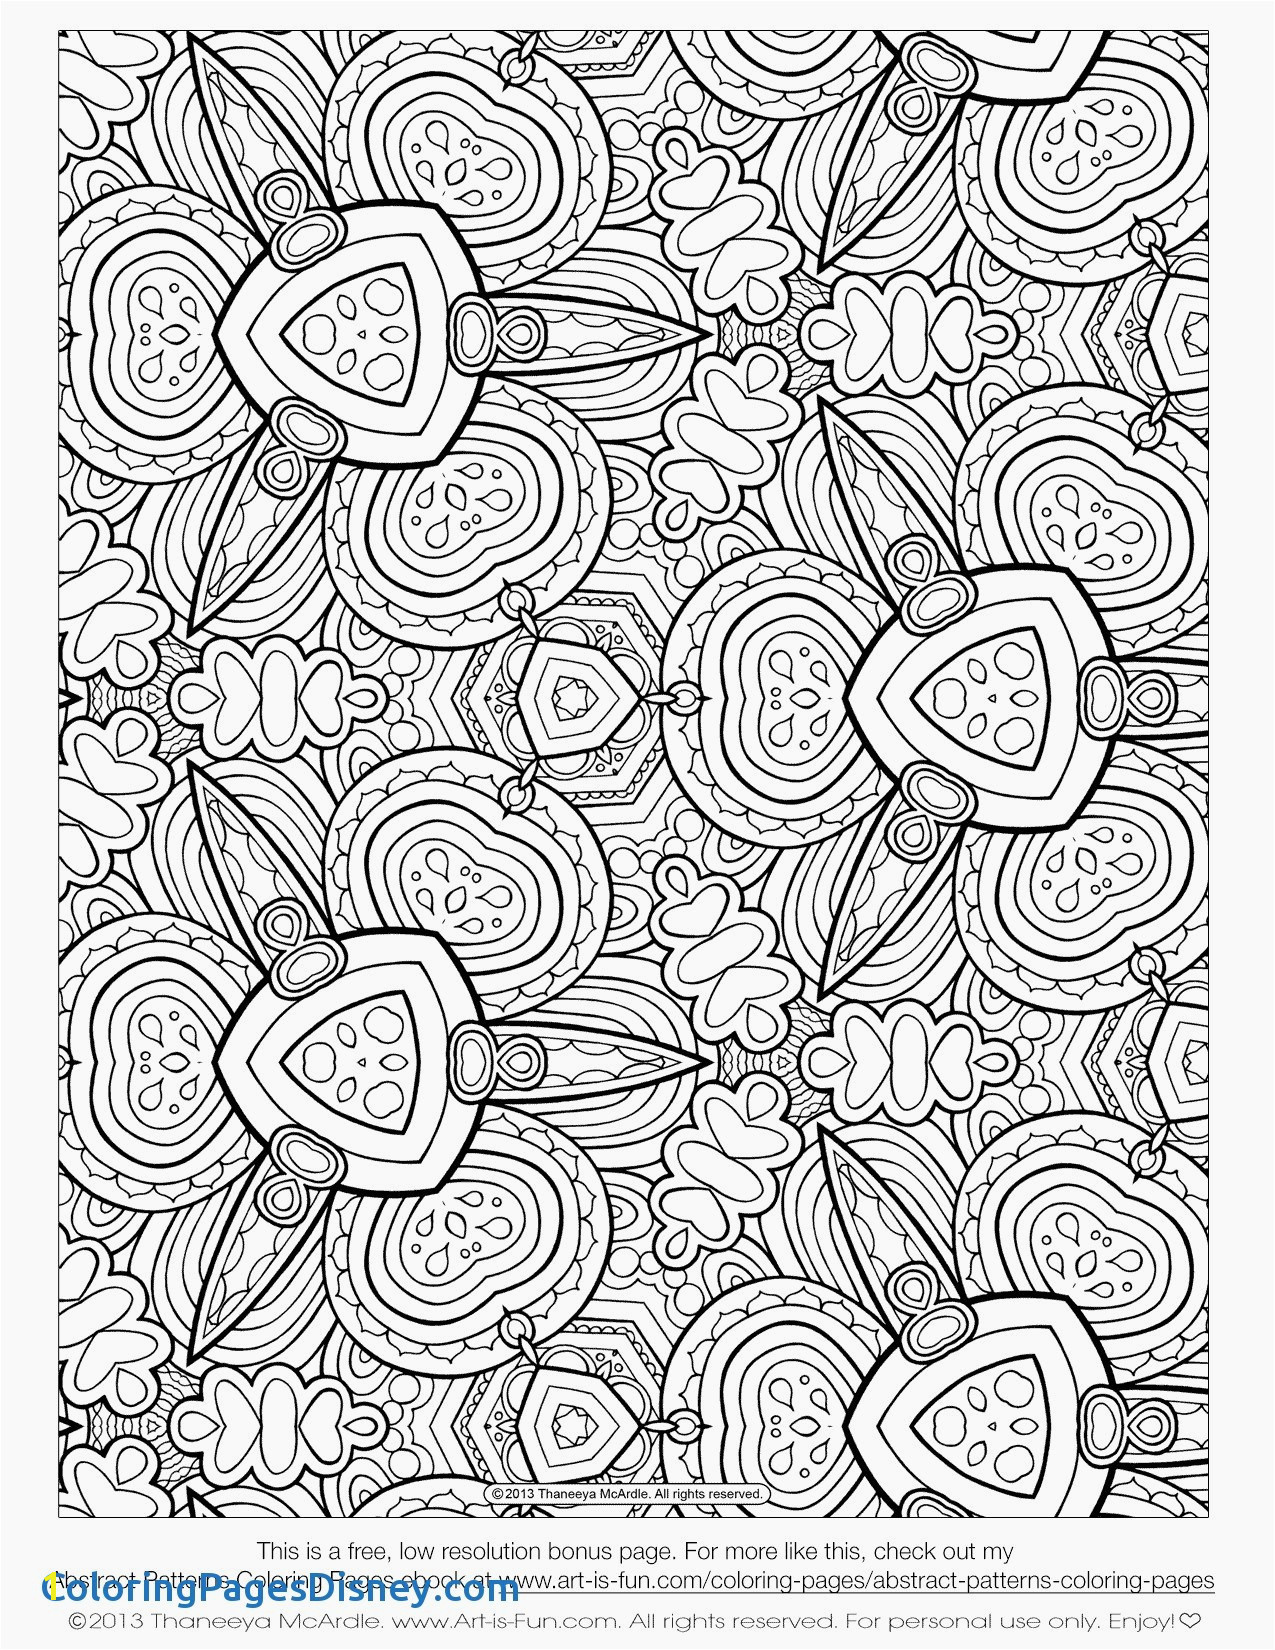 Character Counts Coloring Pages Free Coloring Pages Dragons Download thephotosync